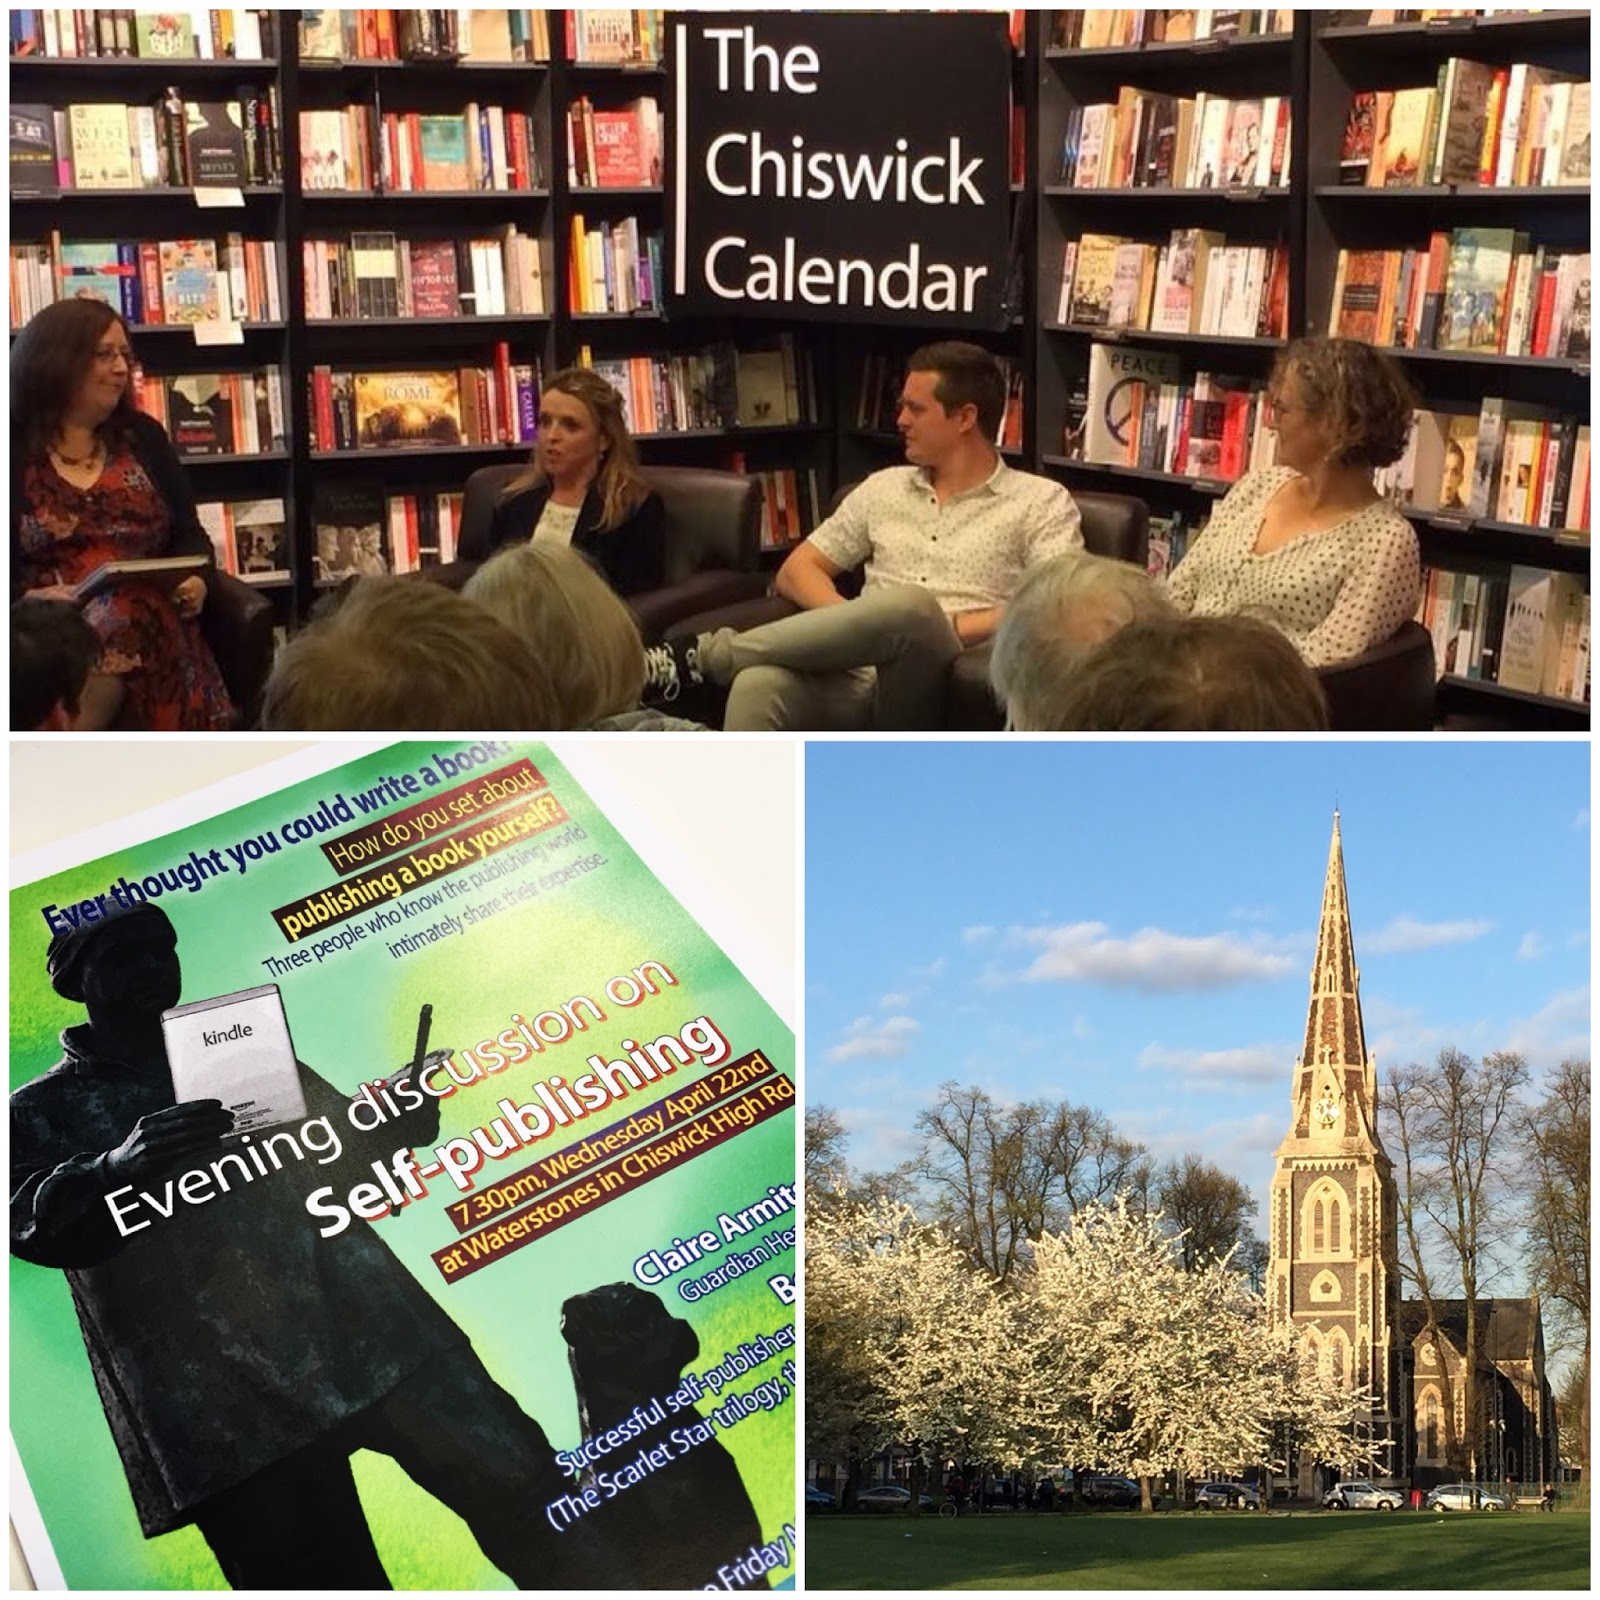 The Chiswick Calendar Self Publishing